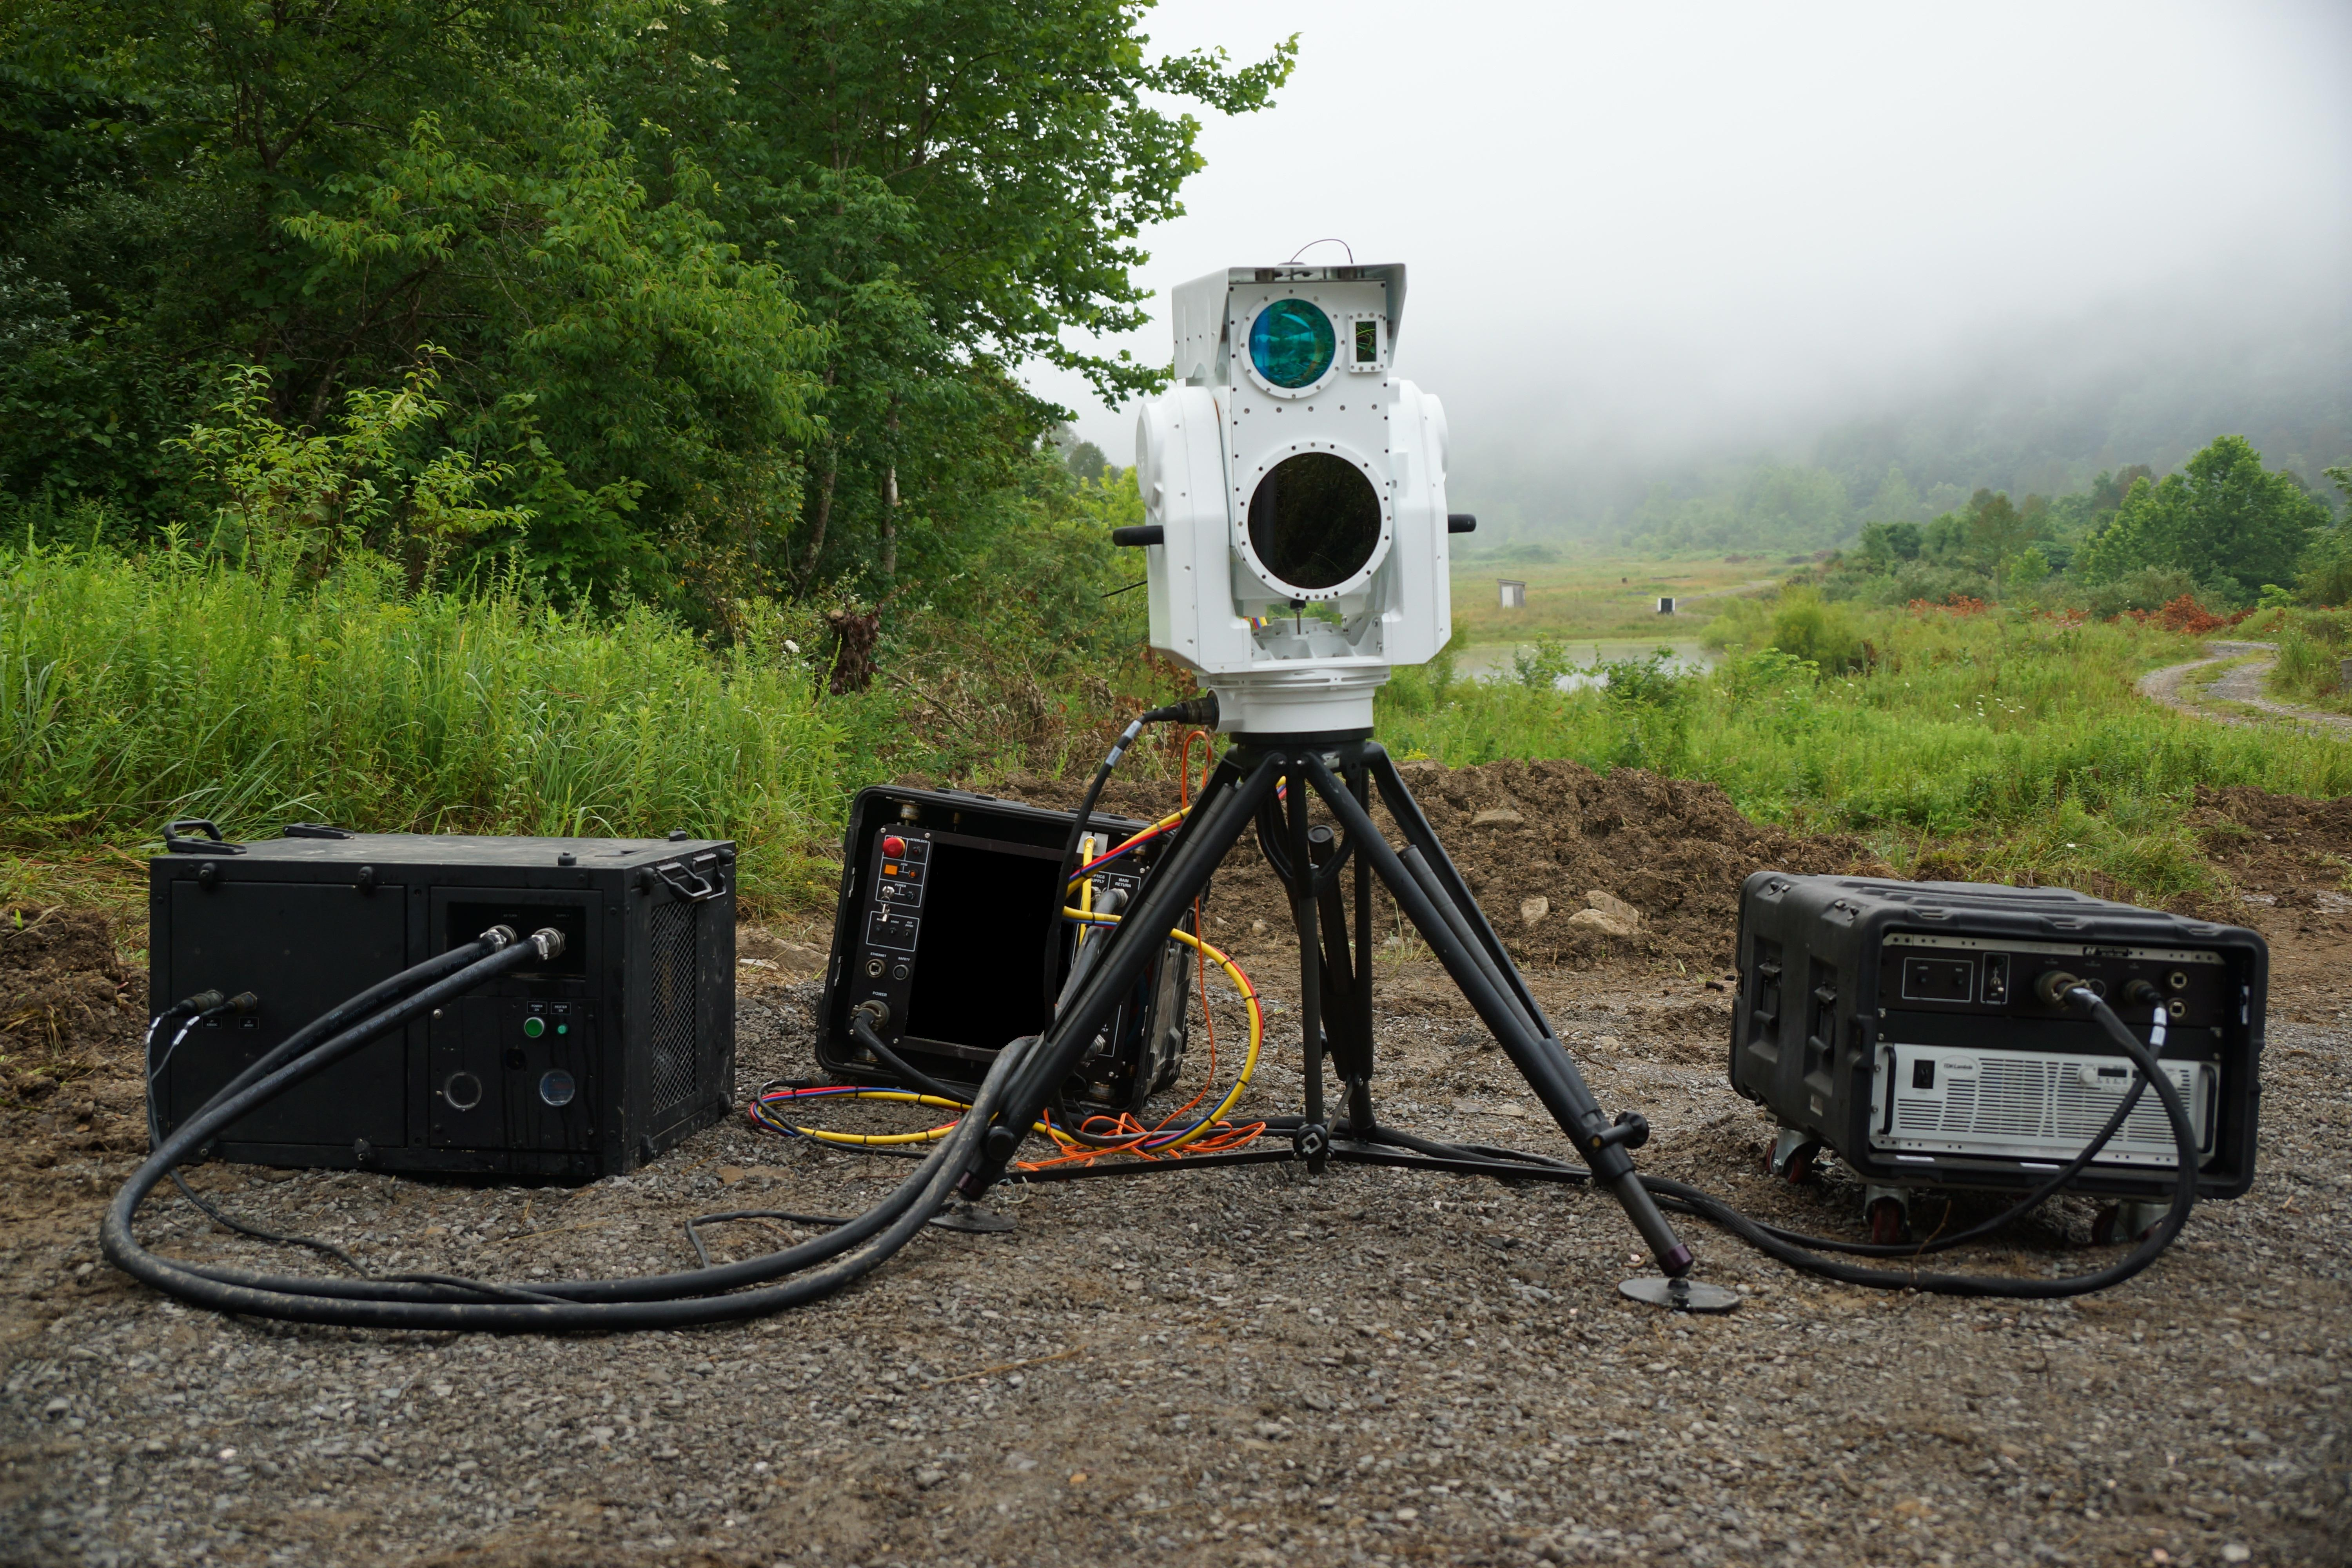 Boeing's Compact Laser Weapon System